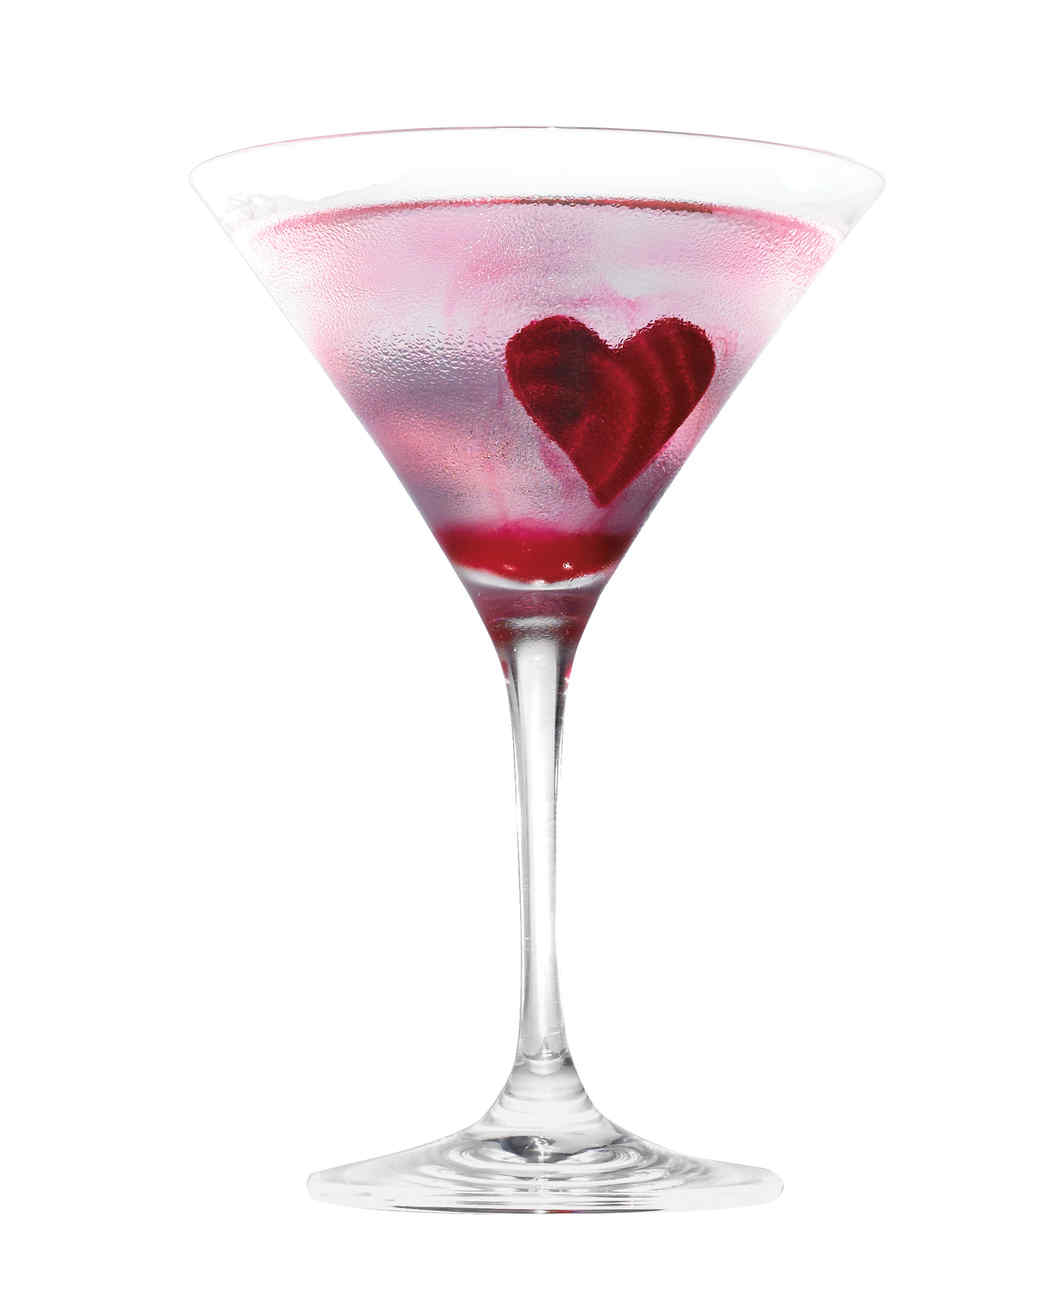 beet-heart-cocktail-437-d111605.jpg